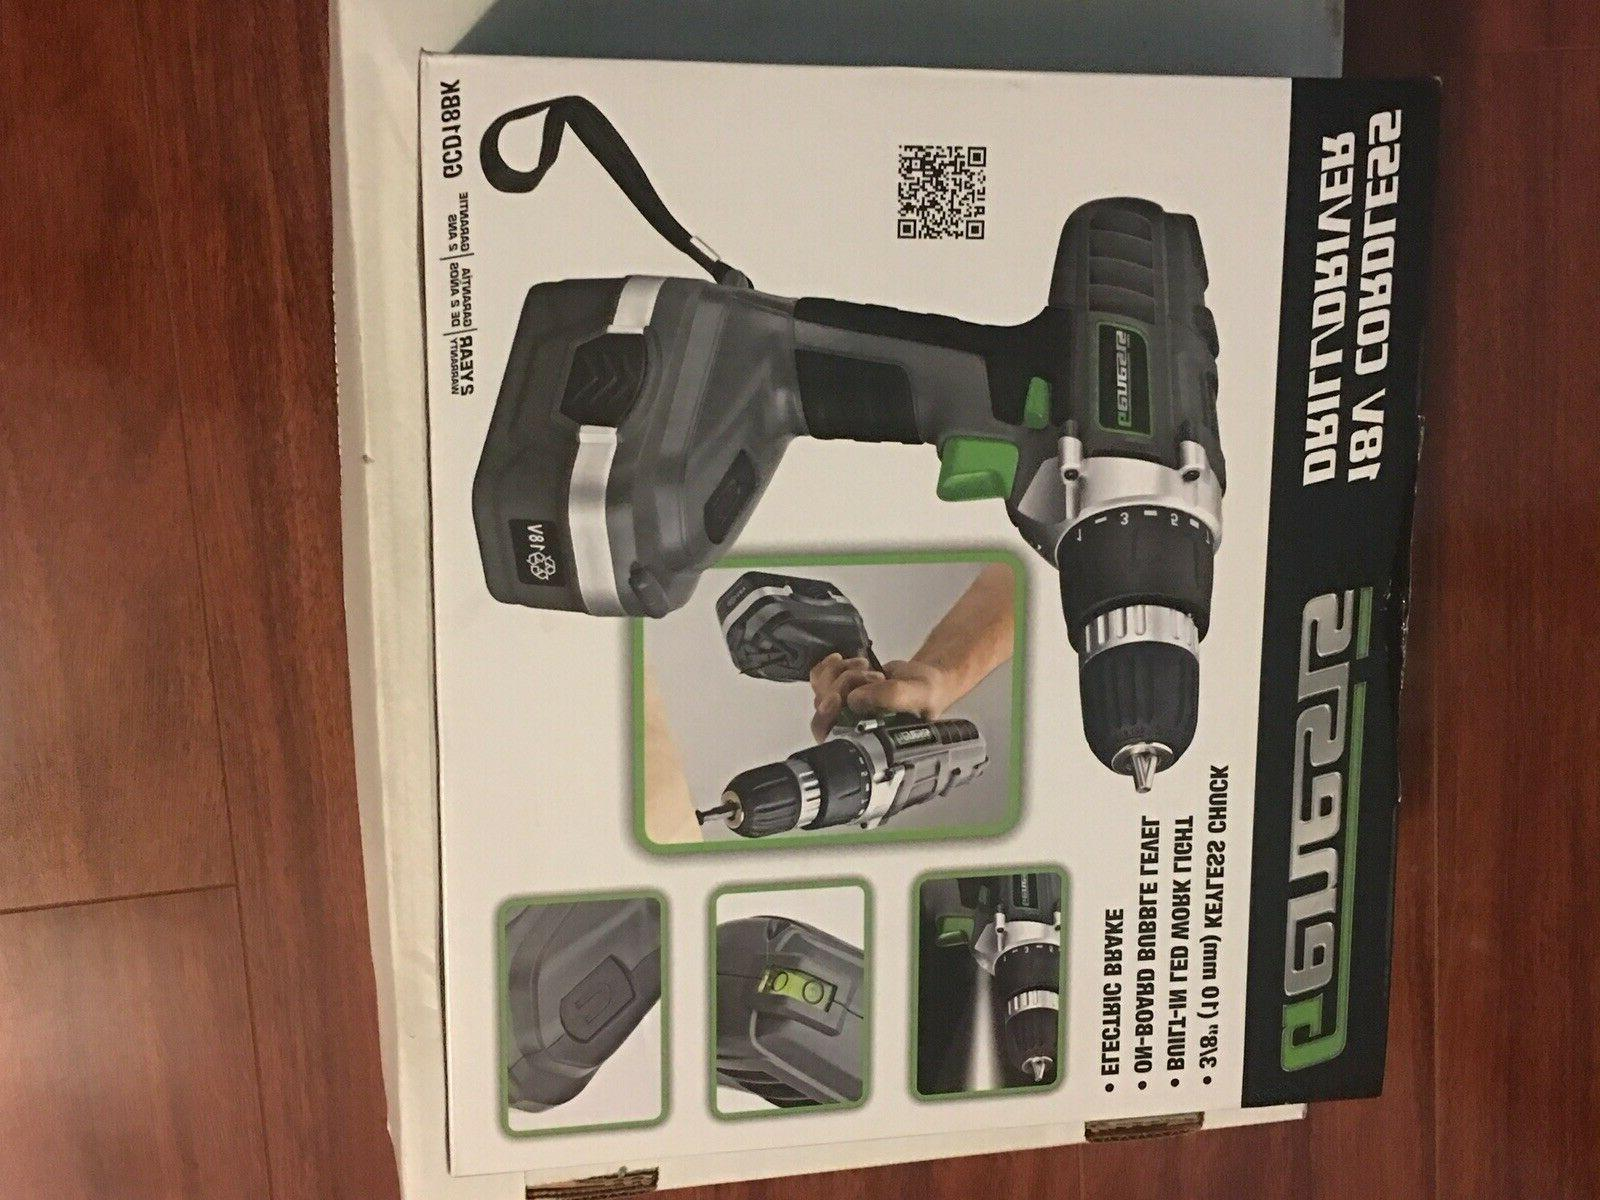 Drill Kit Cordless Electric Set Portable Power Hand Tool